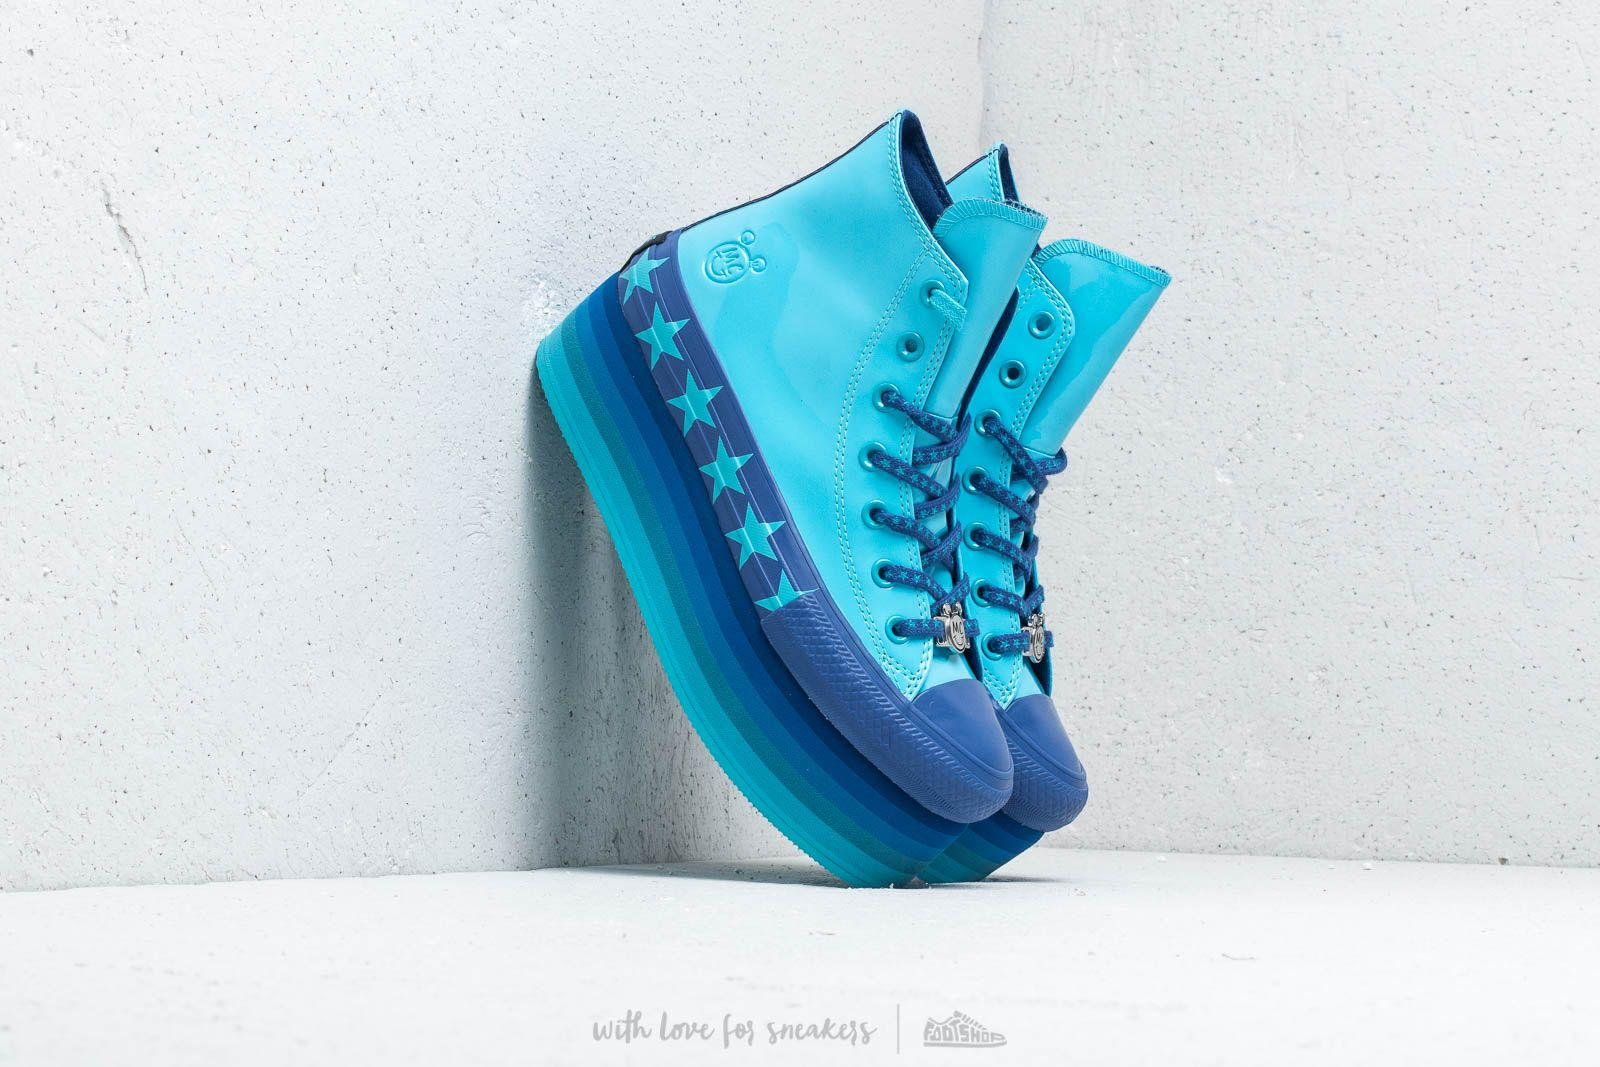 Converse x Miley Cyrus Chuck Taylor All Star Platform Hi Gnarly Blue Blue Gnarly Blue | Footshop